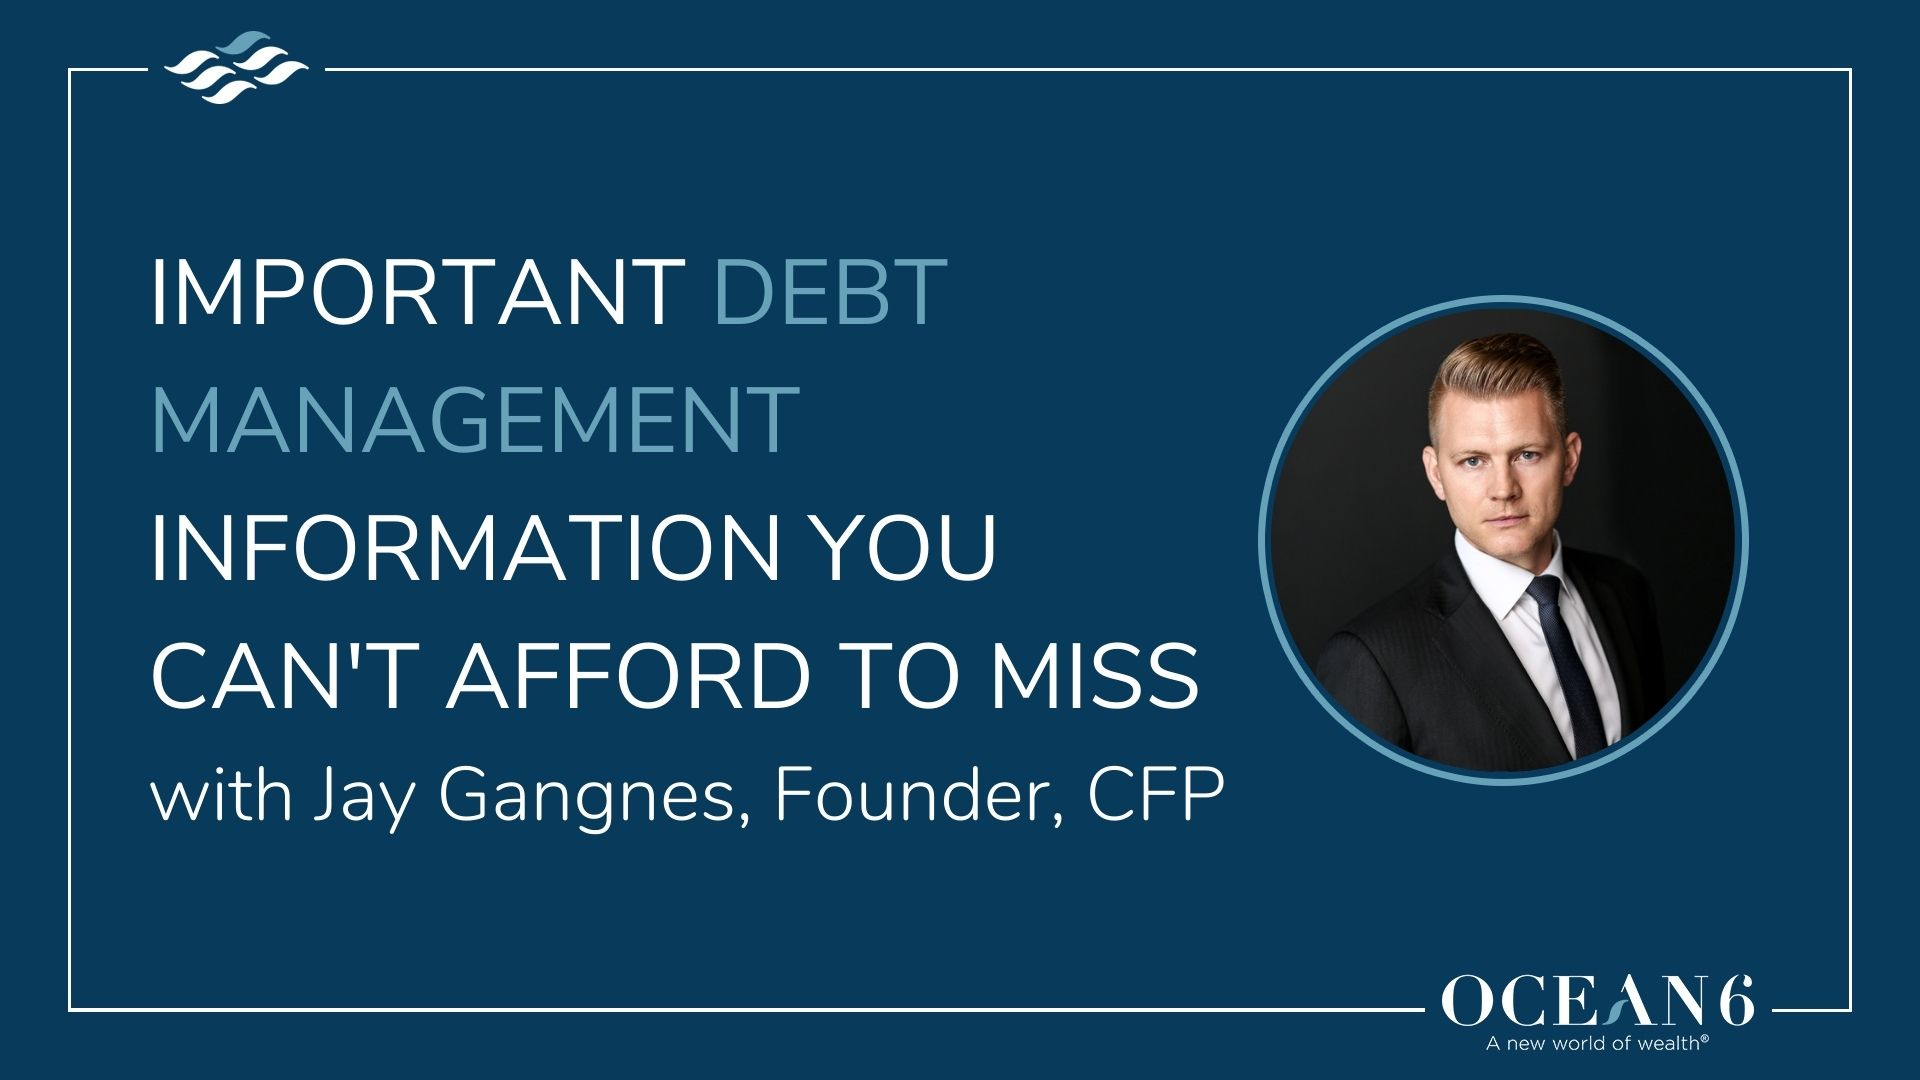 Important Debt Management Information You Can't Afford to Miss